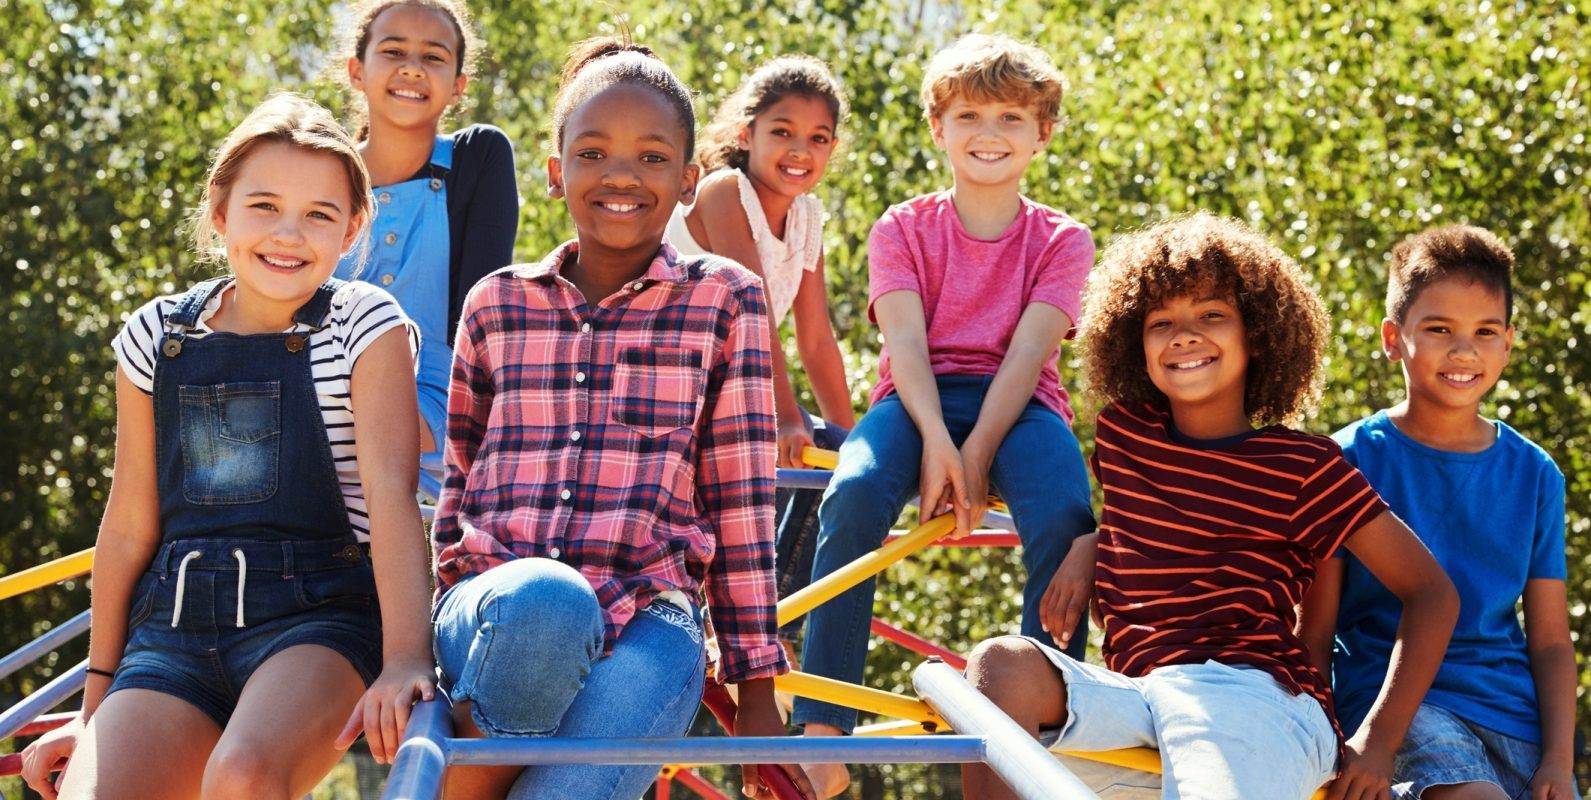 6 Sun Safety Tips: How Kids Can Have Fun in the Sun and Be Sun-Safe, Powered by Nemours Children's Health System